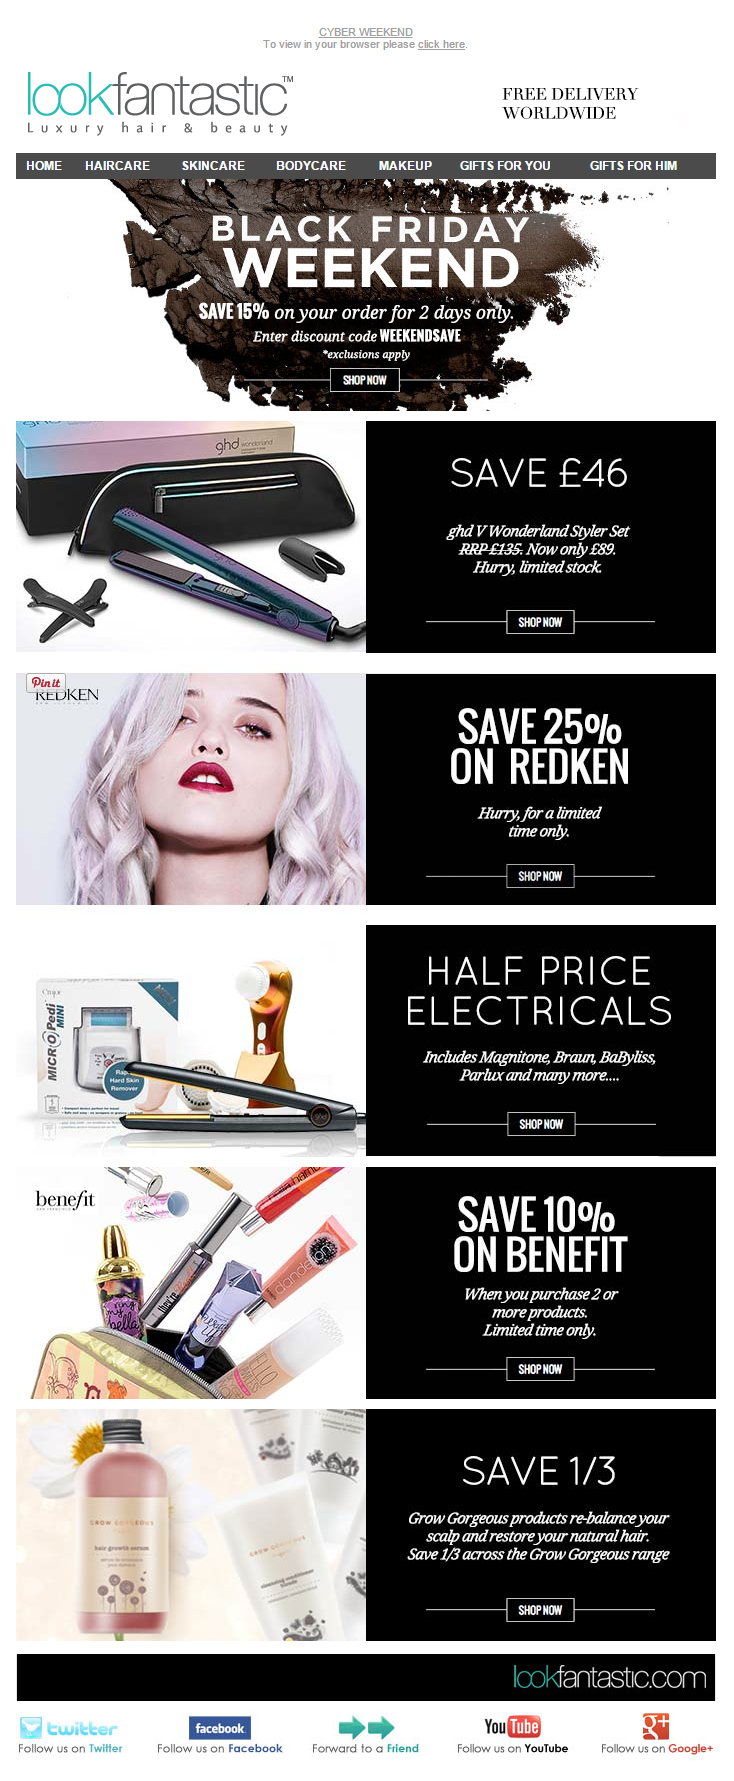 Black Friday Email Marketing Inspiration 2014 Look Fantastic